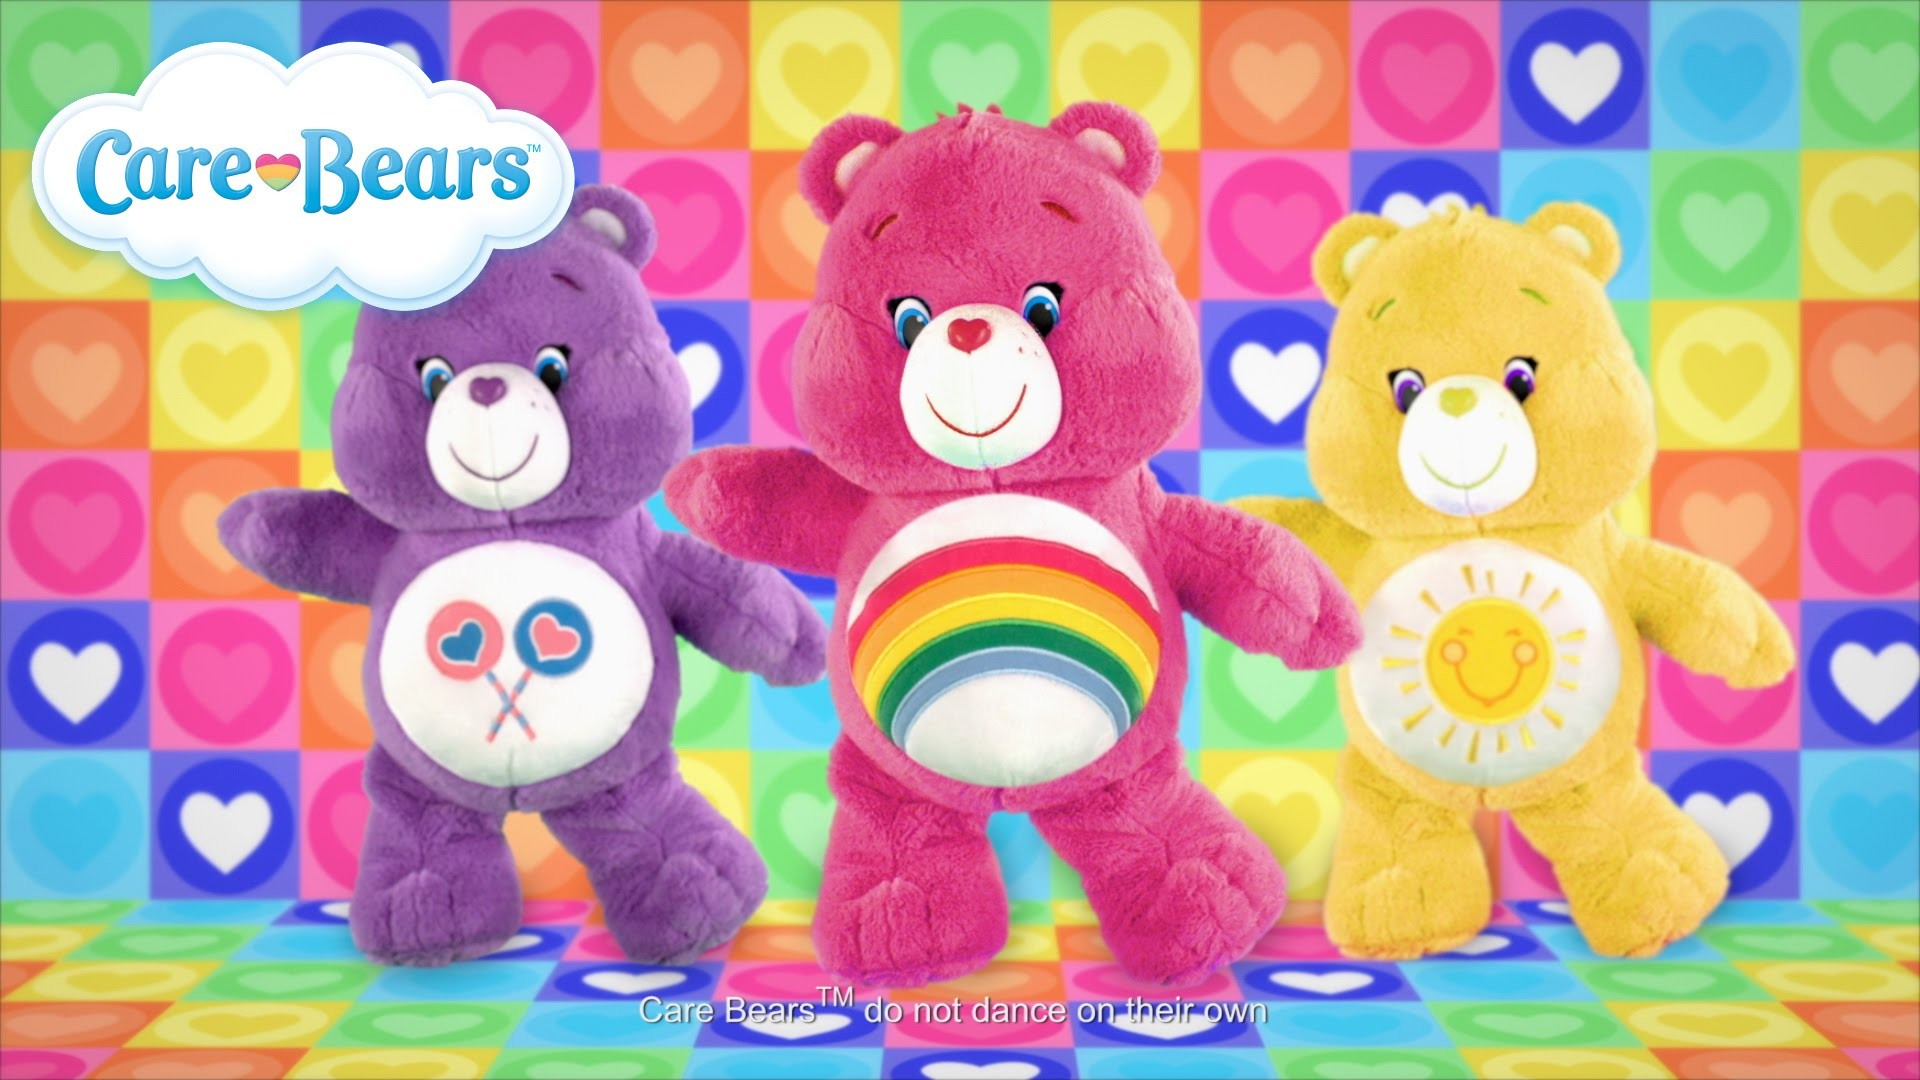 1920x1080 the care bears Wallpaper and Background | 1440x900 | ID:491793